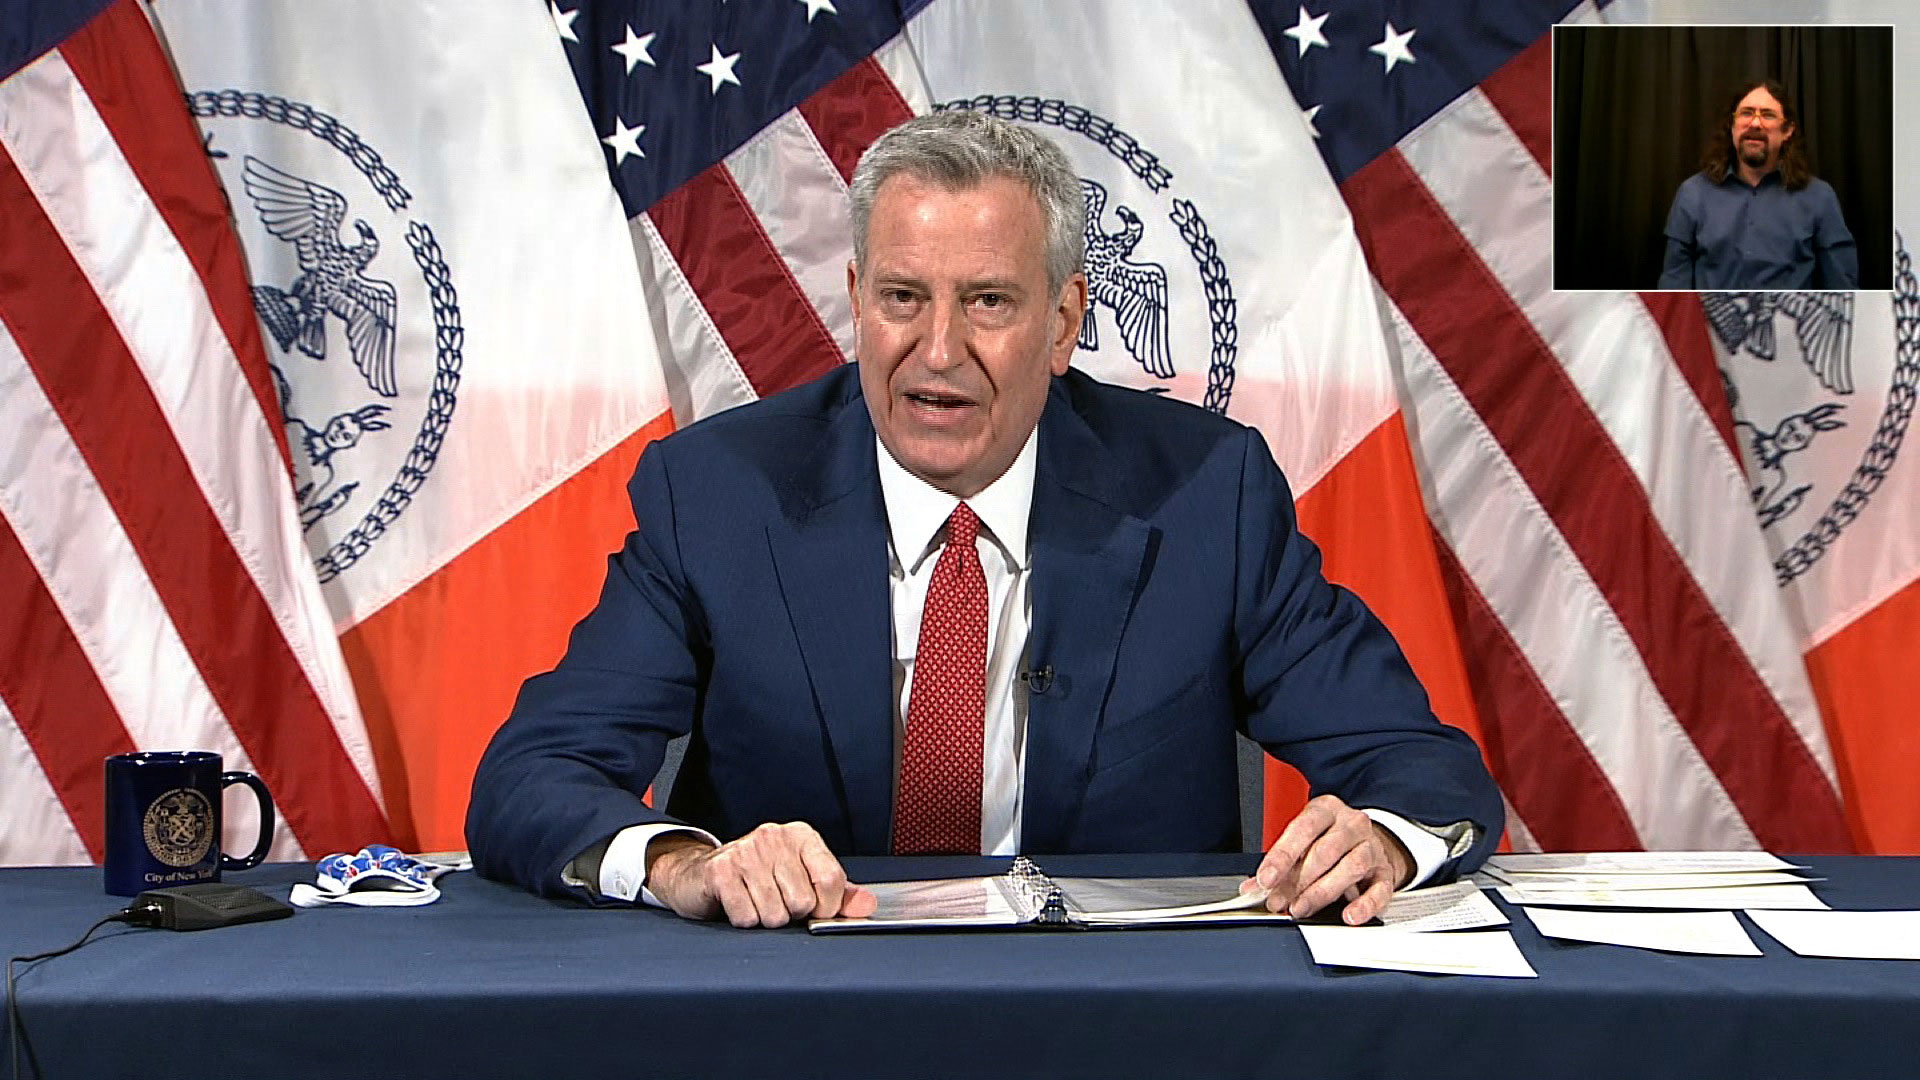 New York City Mayor Bill de Blasio speaks at a press conference in New York on January 6.